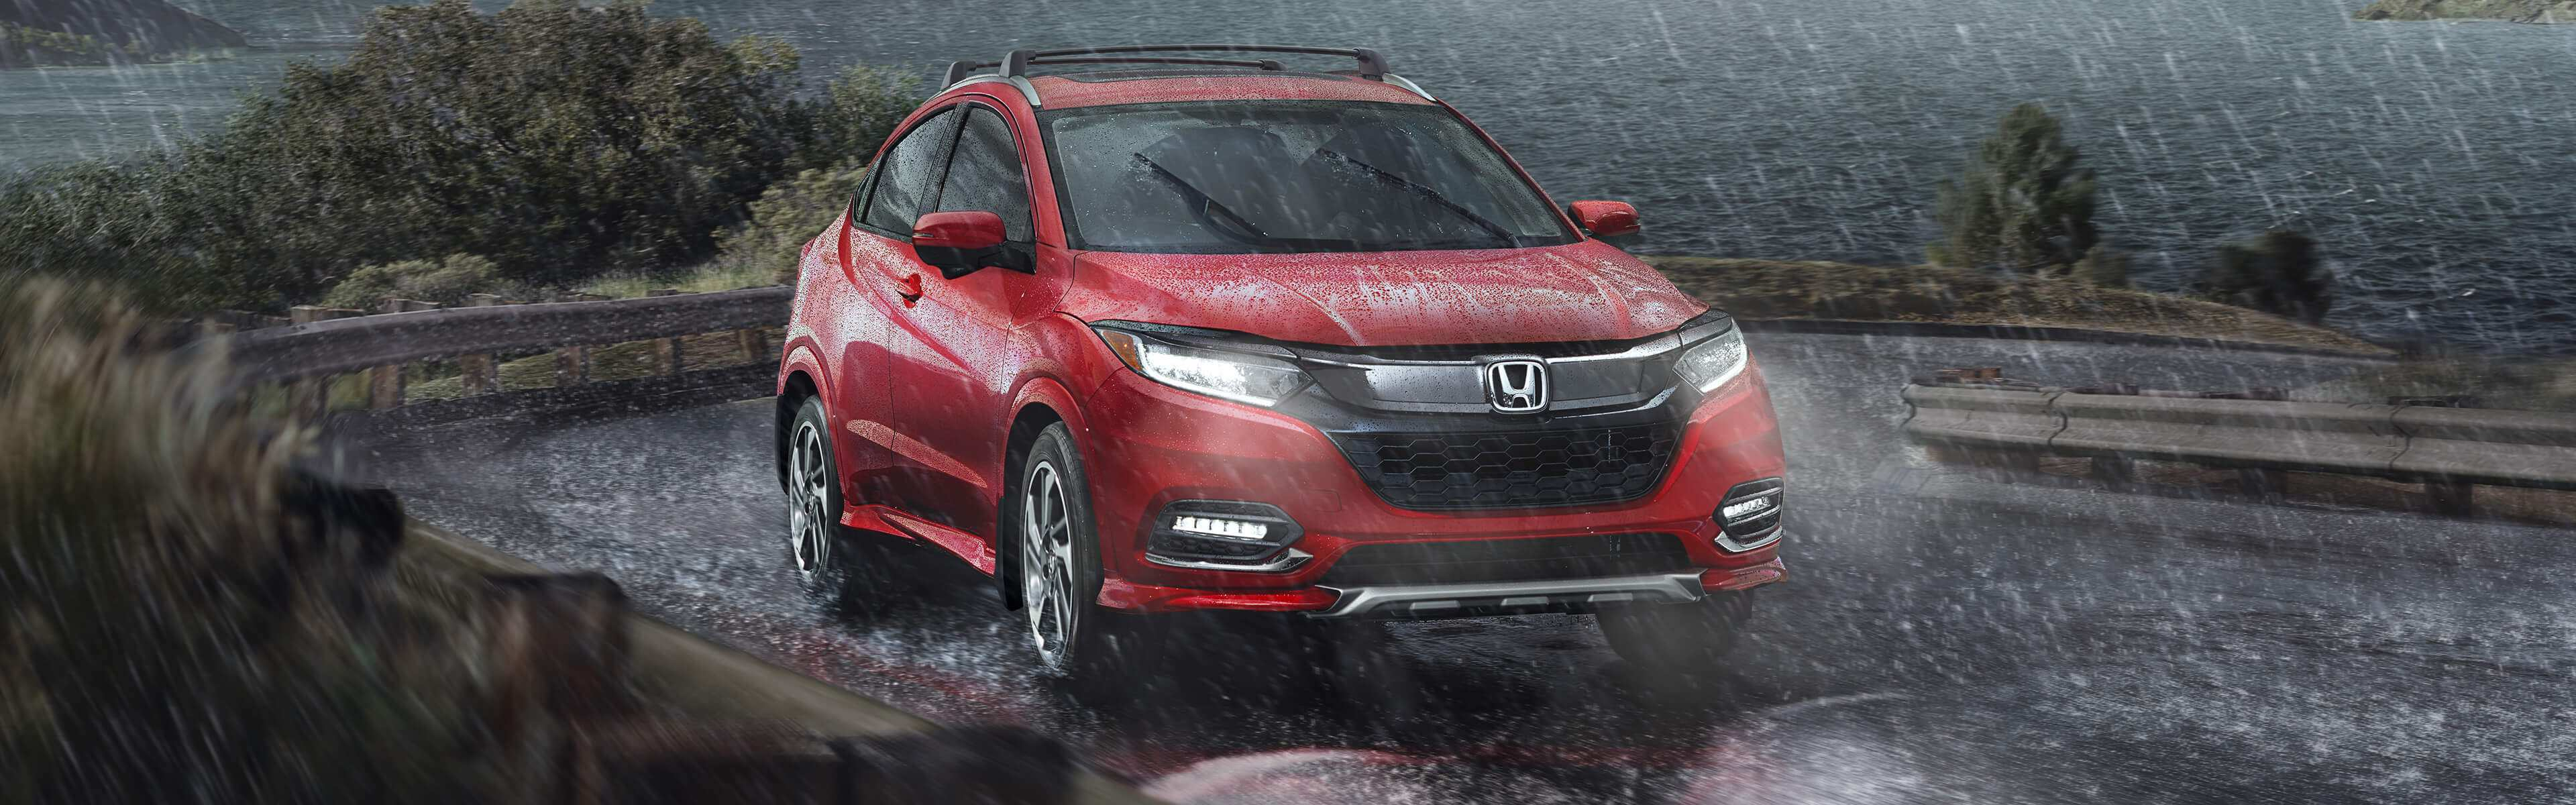 93 The Best 2019 Honda Hrv Rumors New Review